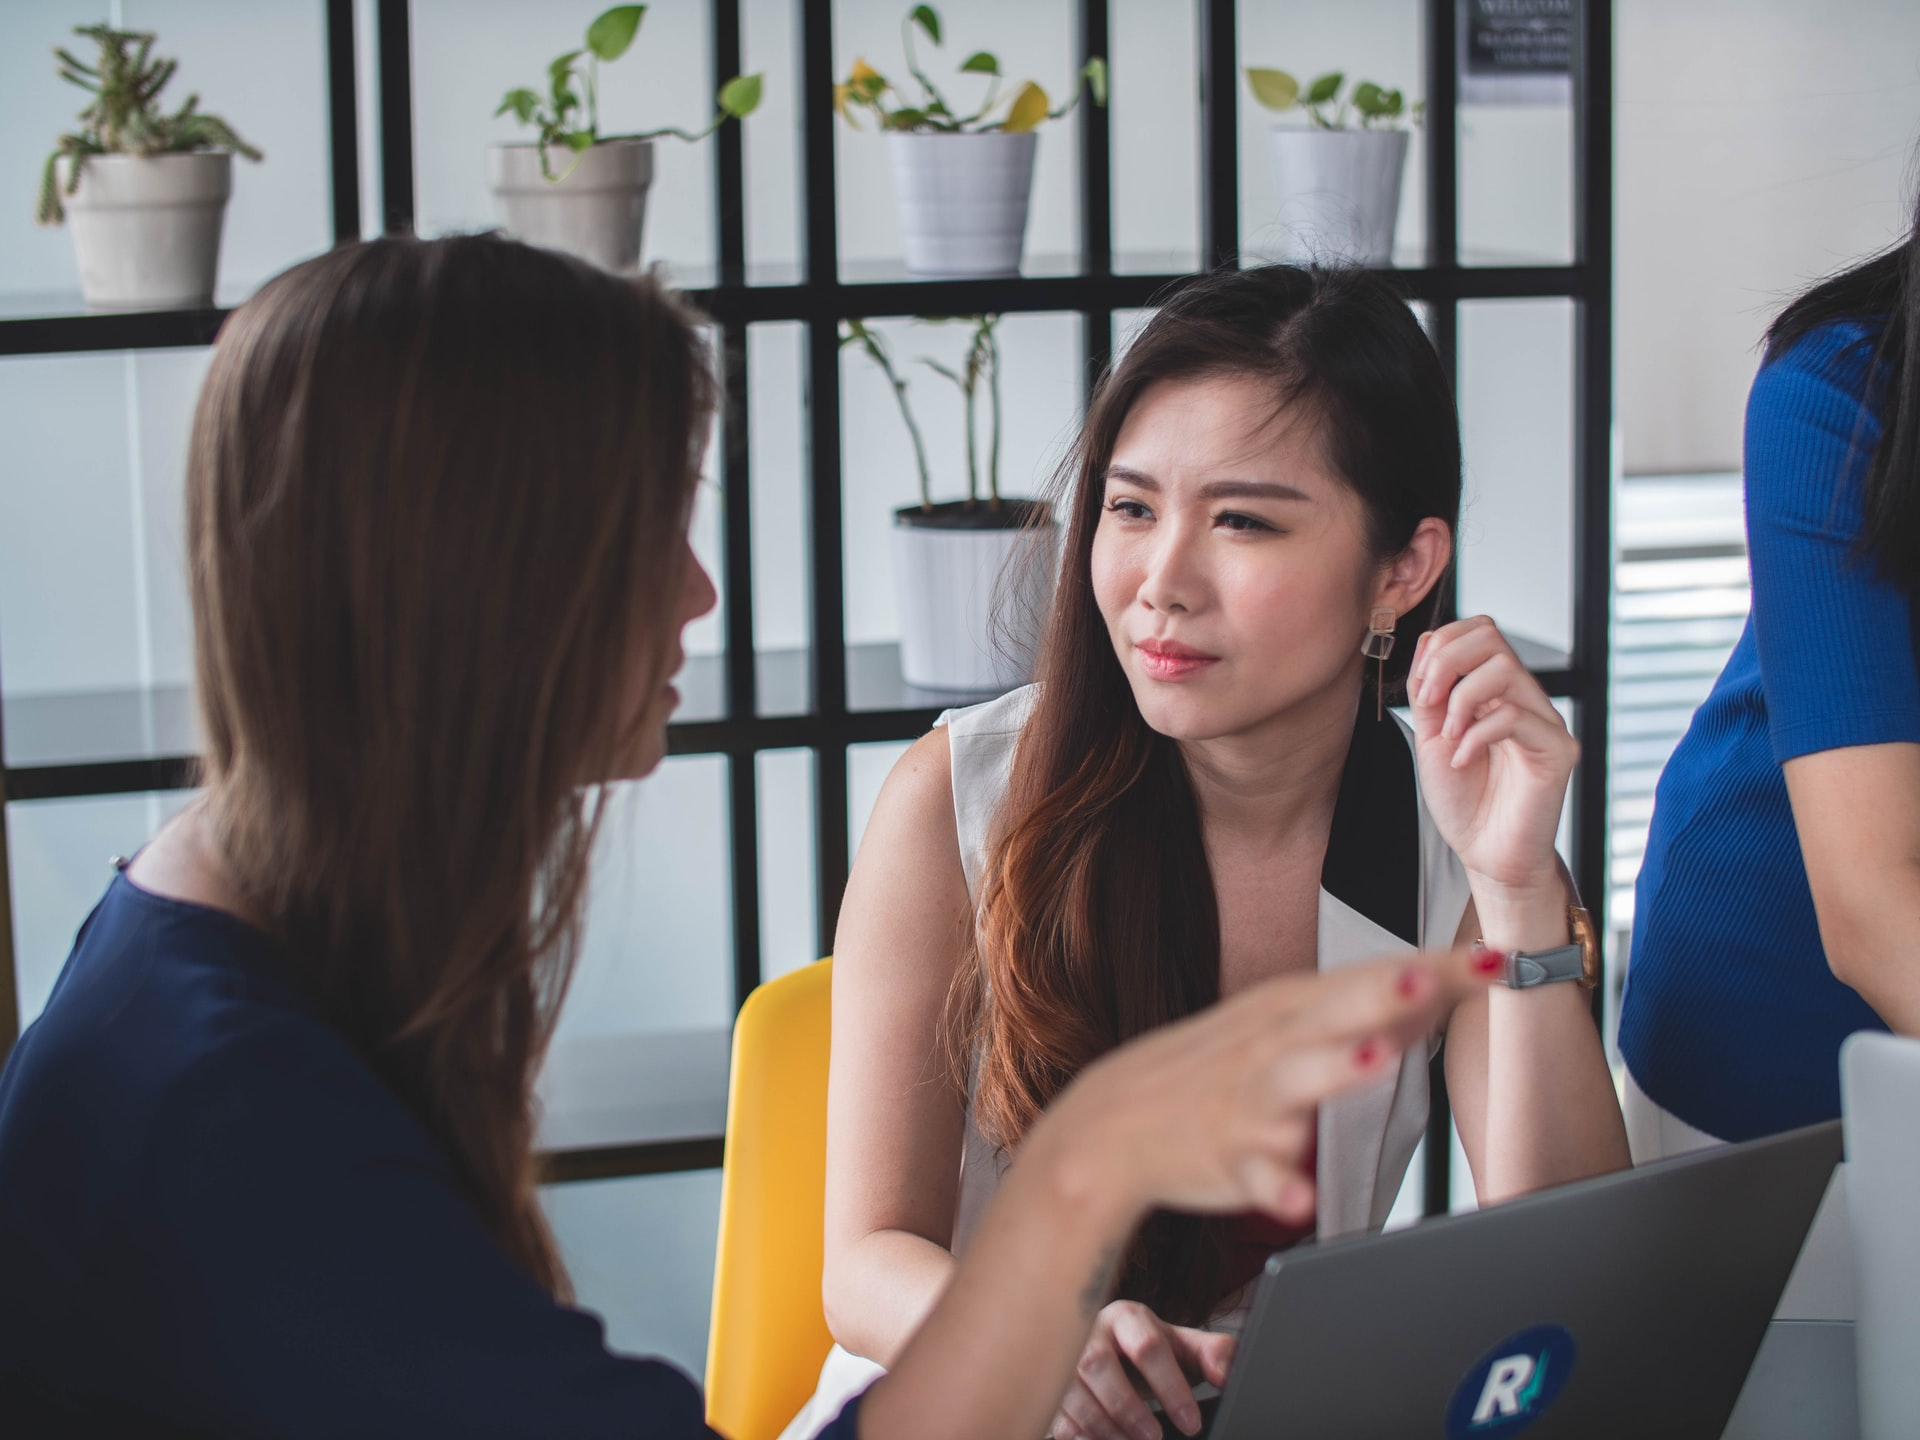 Two women talking in an office space. Microaggressions often happen in everyday life.